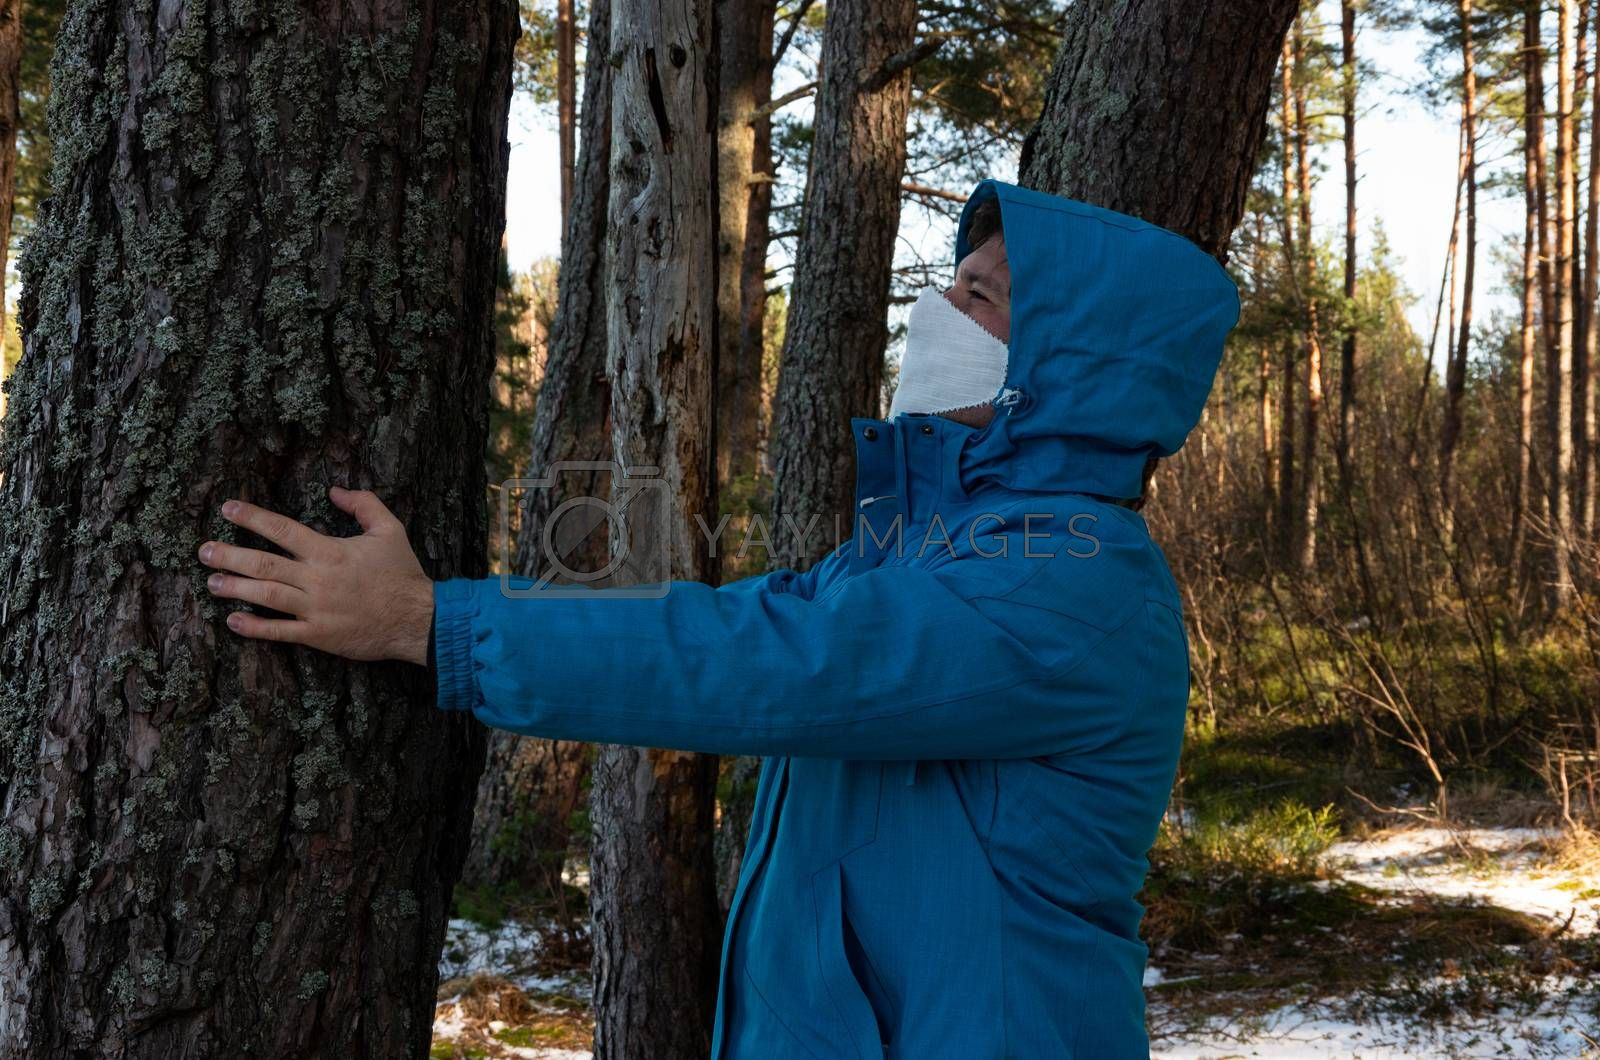 Virus, a man with a white face mask in a blue jacket, coronavirus, COVID-19